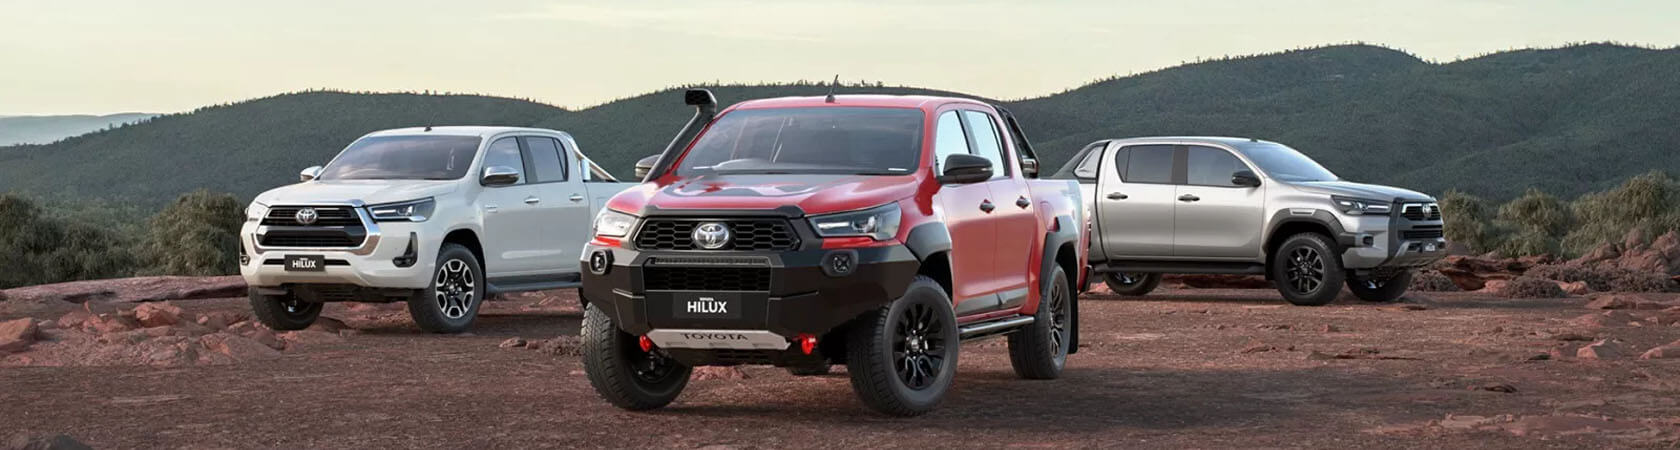 Macquarie Toyota HiLux